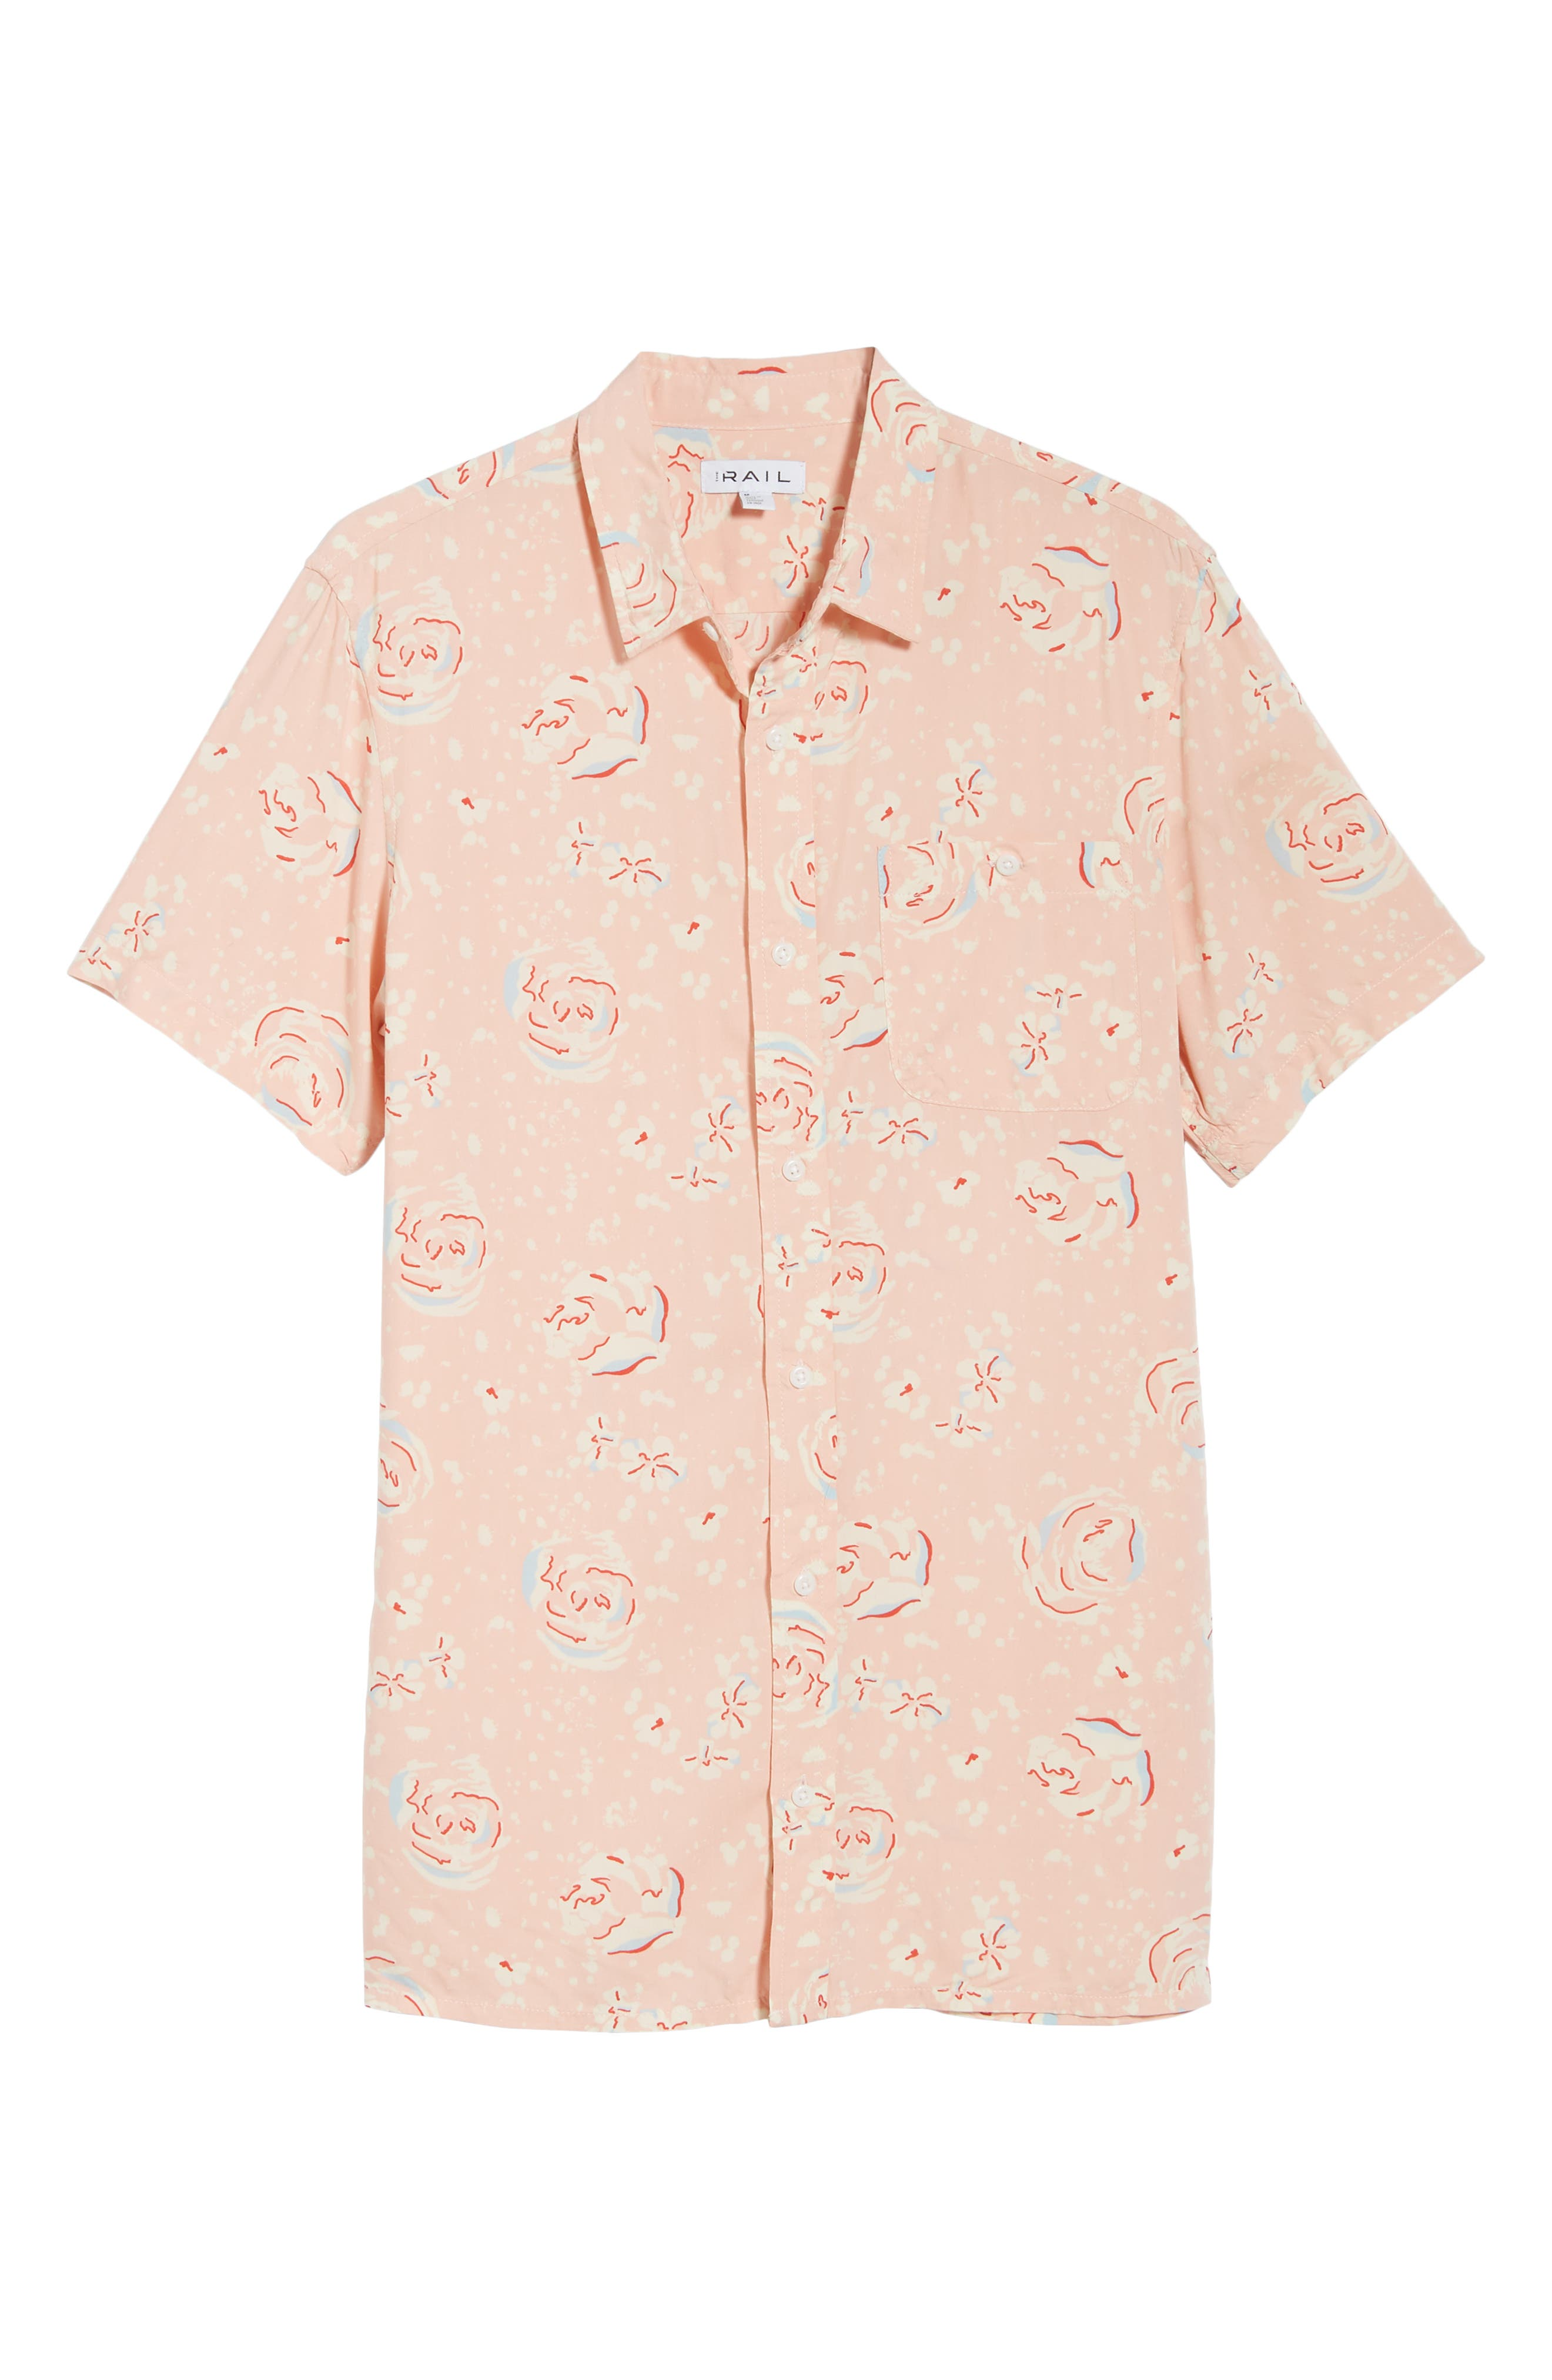 Print Woven Shirt,                             Alternate thumbnail 3, color,                             Pink Silver Abstract Floral